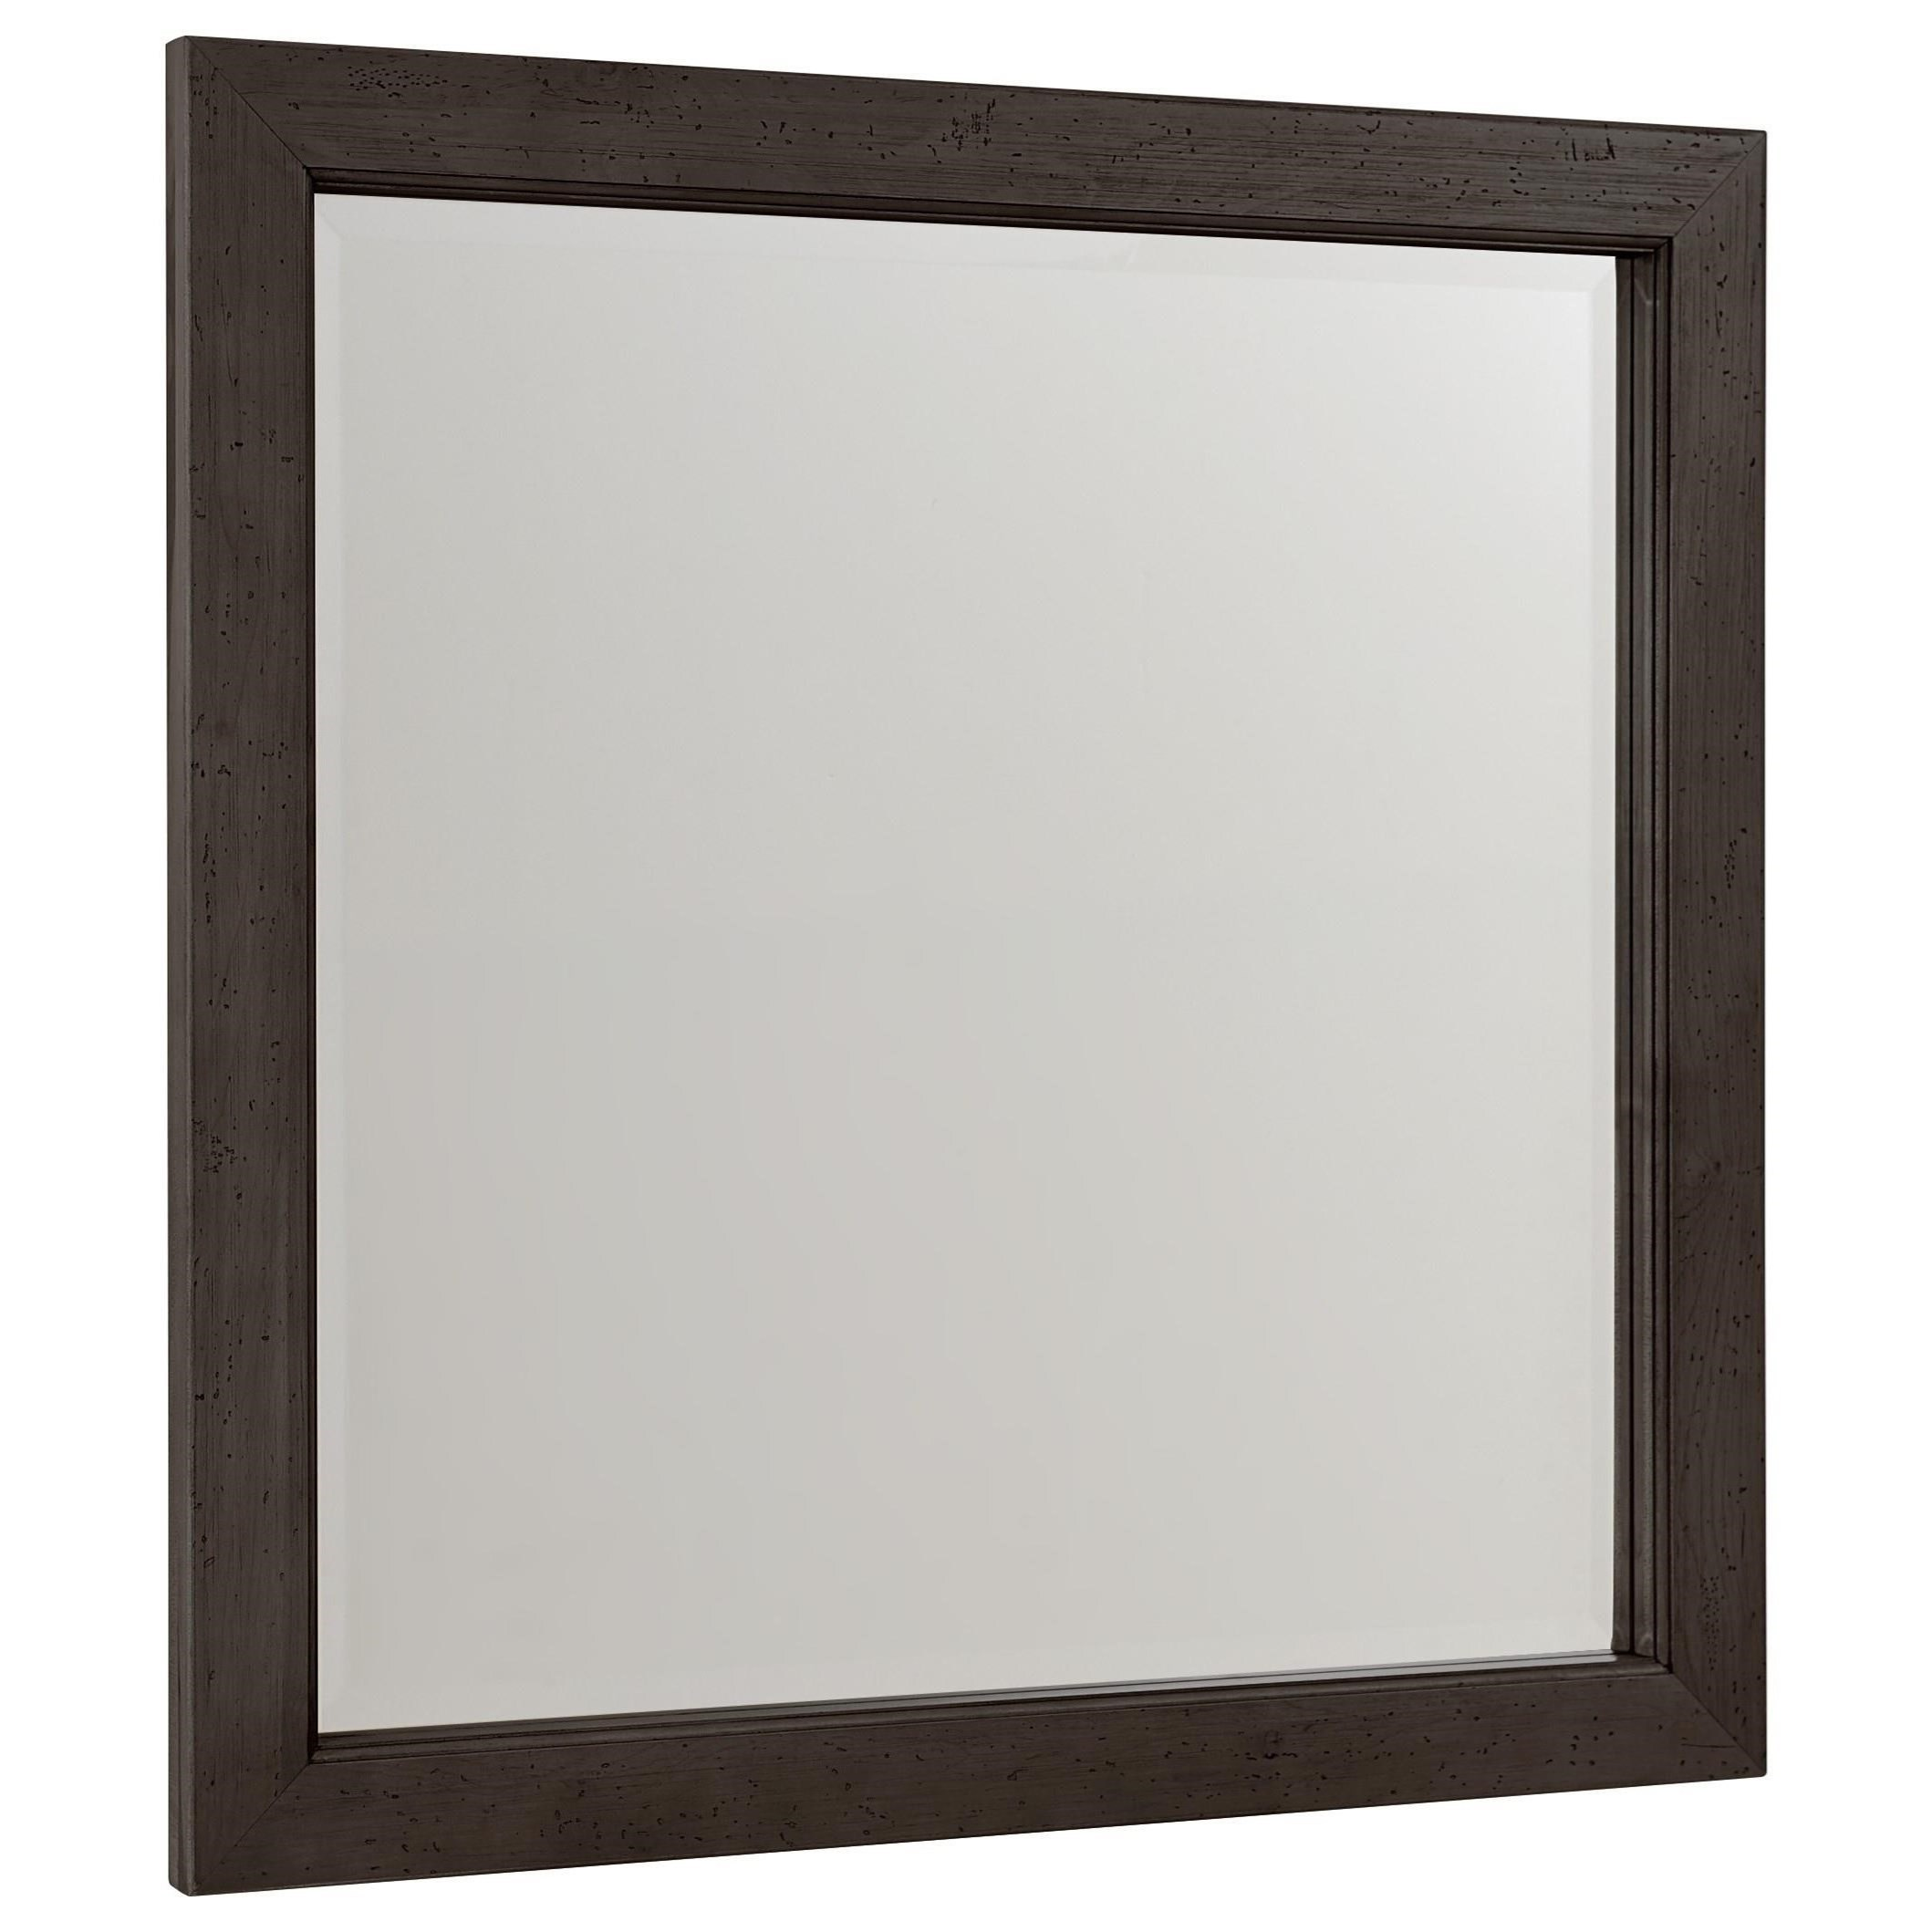 Touche Dresser Mirror  by Centennial Solids at Rooms and Rest